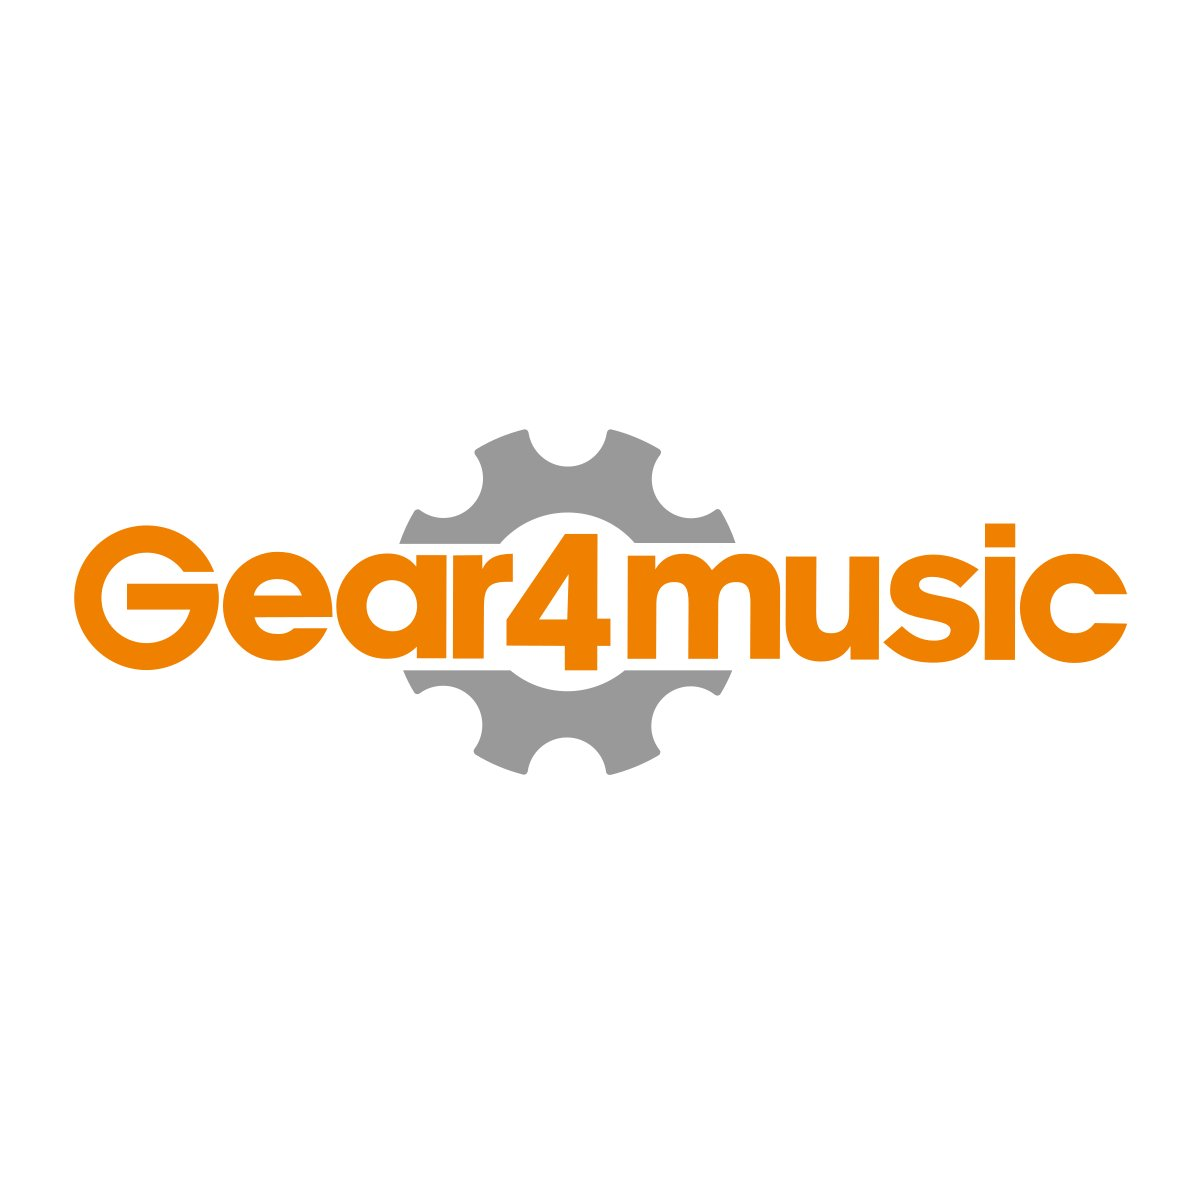 Estante de 7 Guitarras de Gear4music